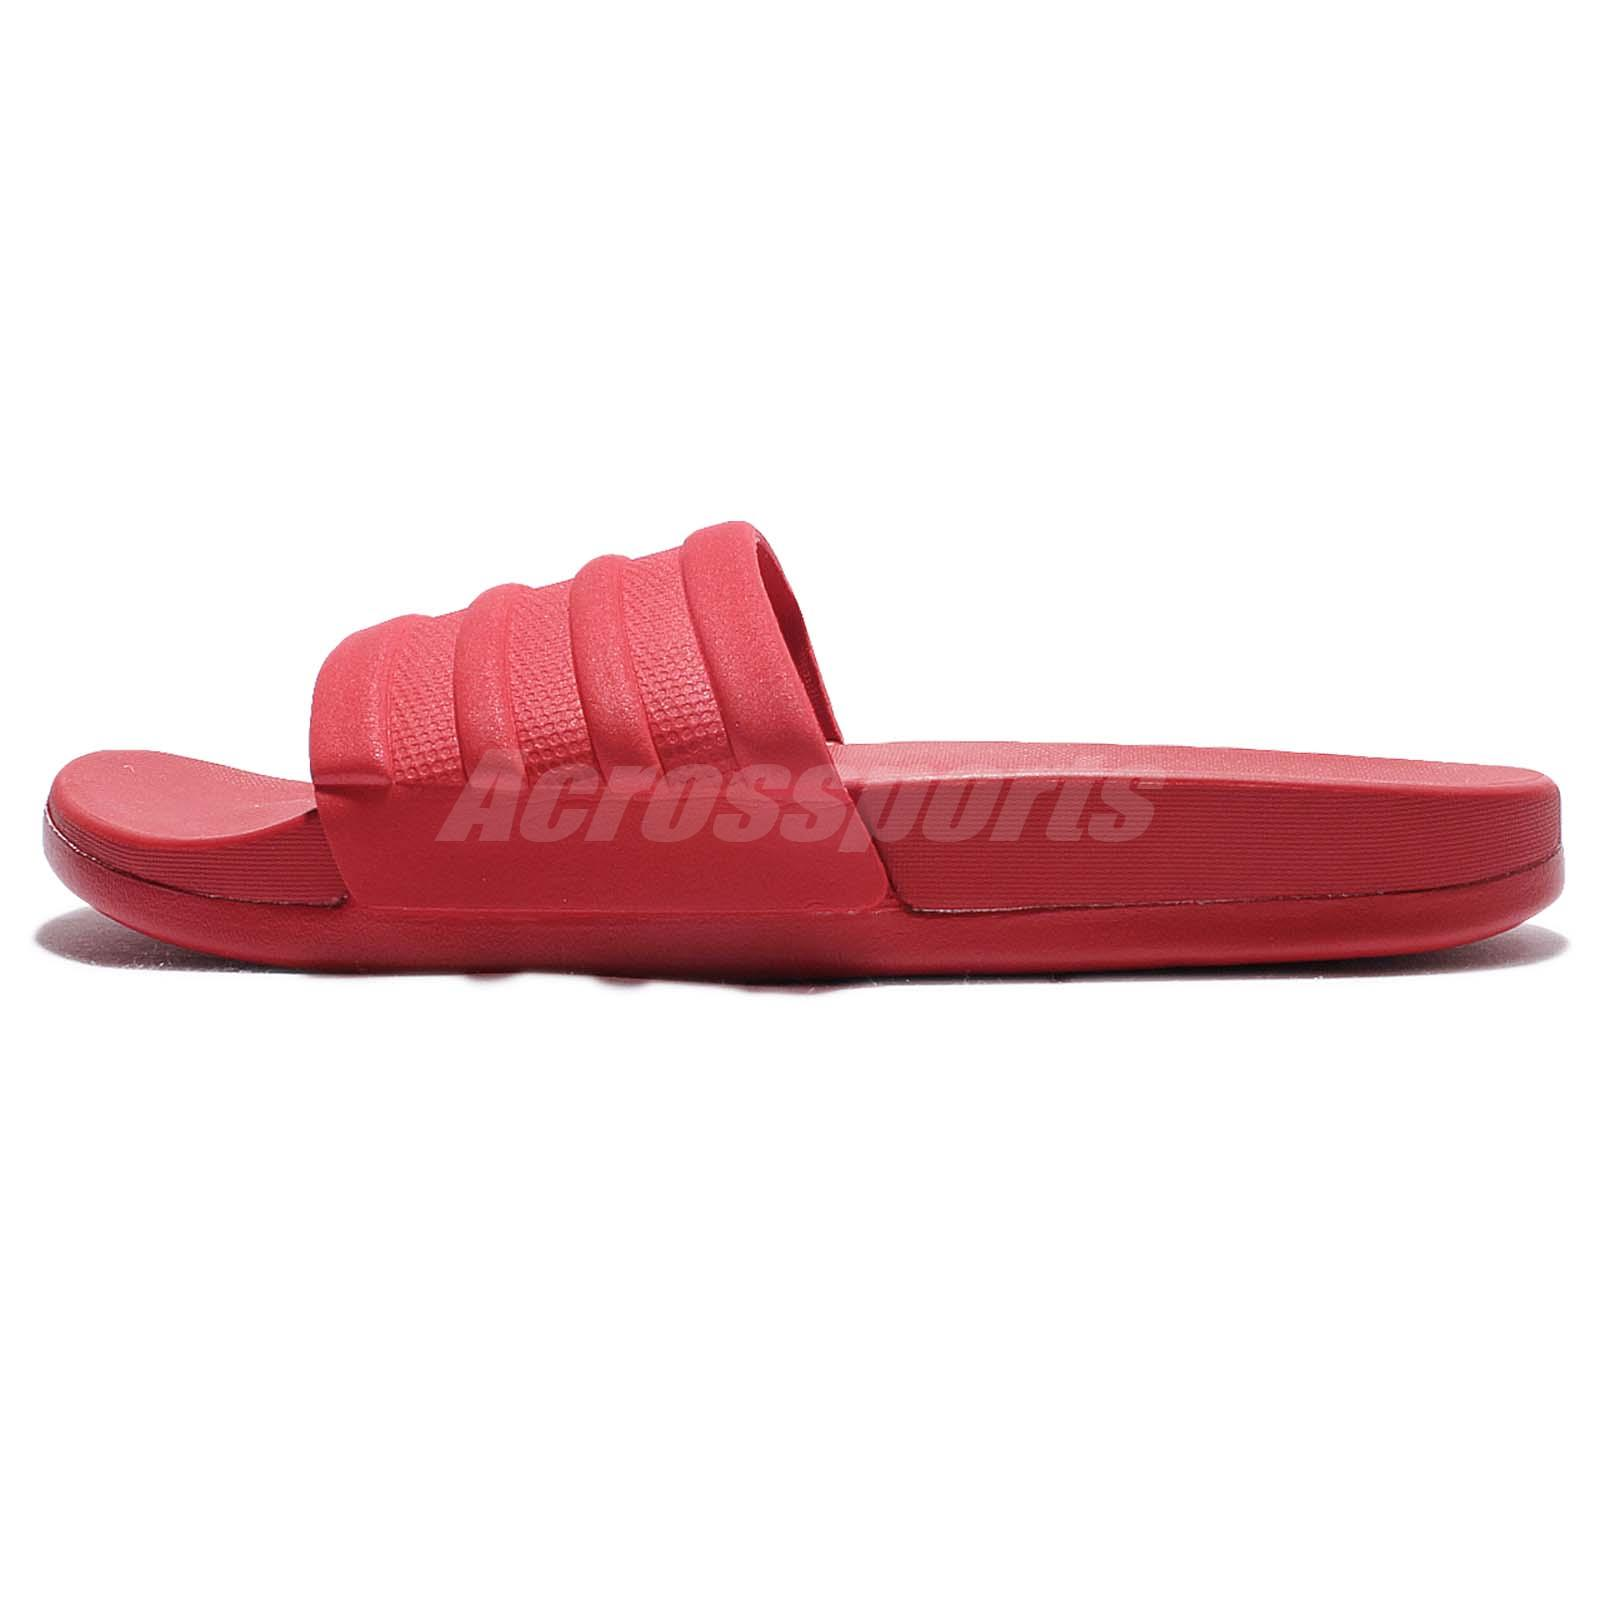 adidas Adilette CF Mono W Cloudfoam Plus Red Women Sandal Slides Slippers BB4541